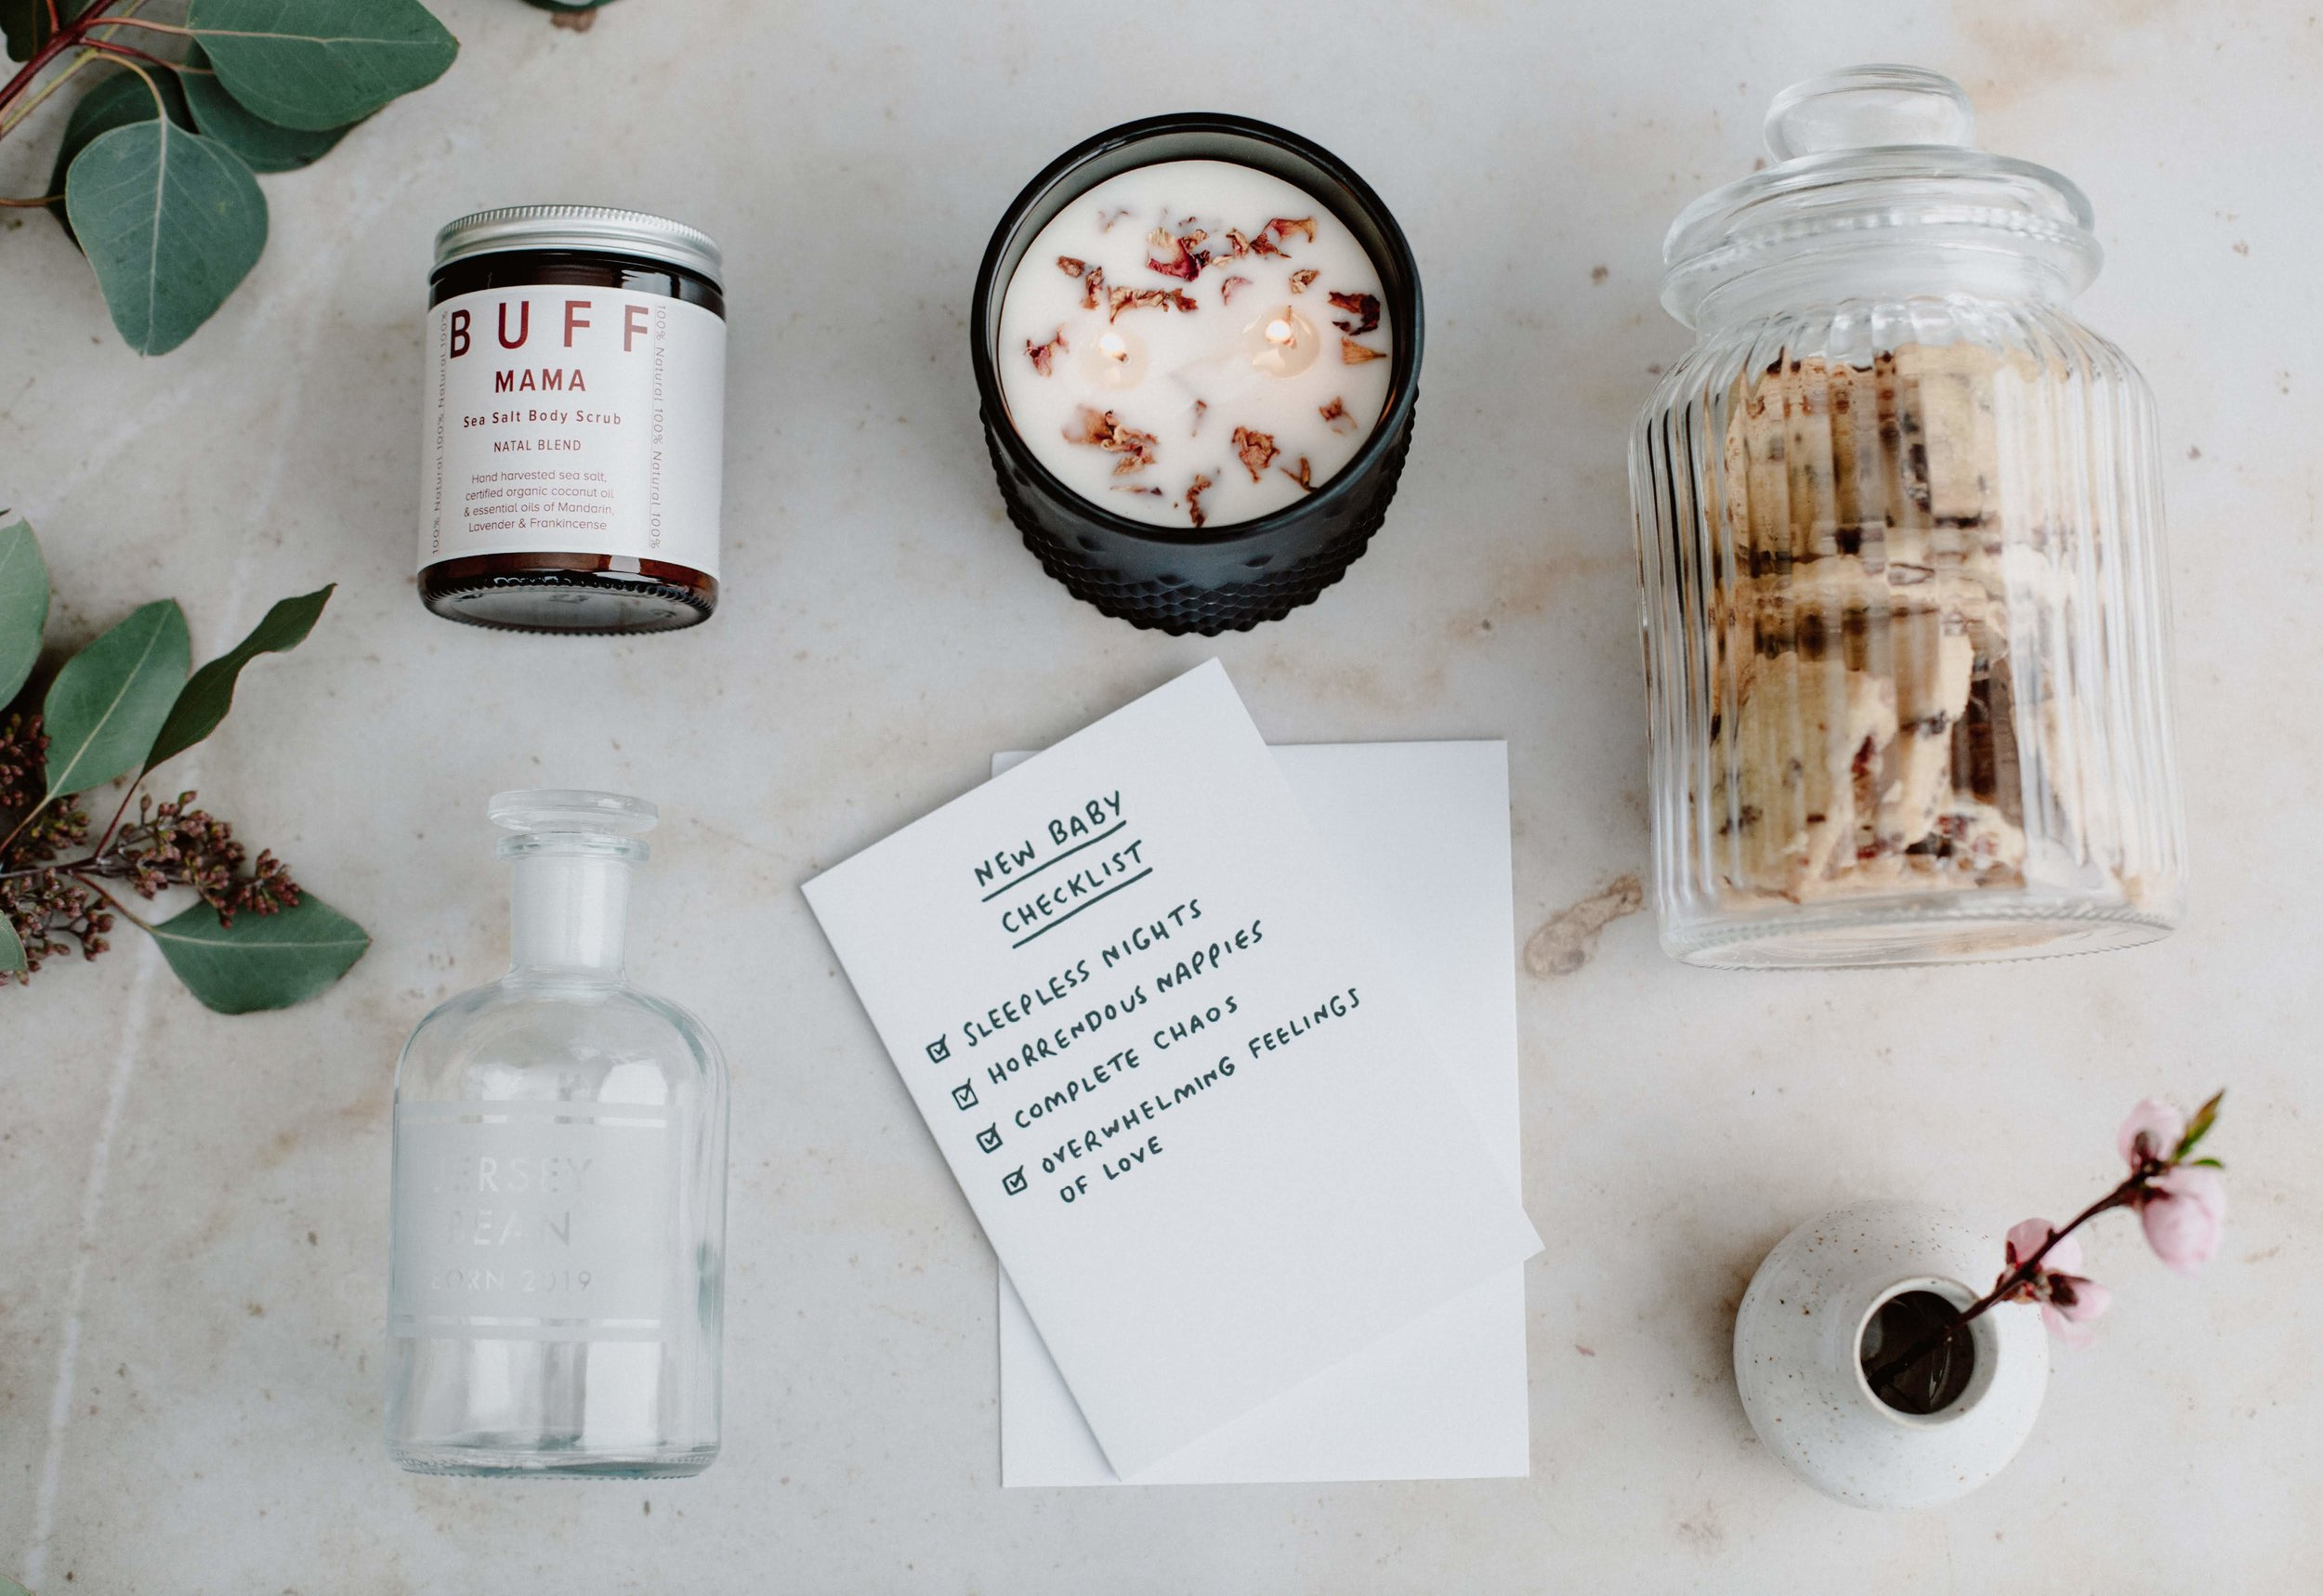 We love gifts with meaning - Harriet and Rose is a unique online shopping service and platform based in Jersey, Channel islands.With an emphasis on thoughtful rather than luxury, Harriet & Rose offers a specialist gift finding and reminder service alongside its online shop.